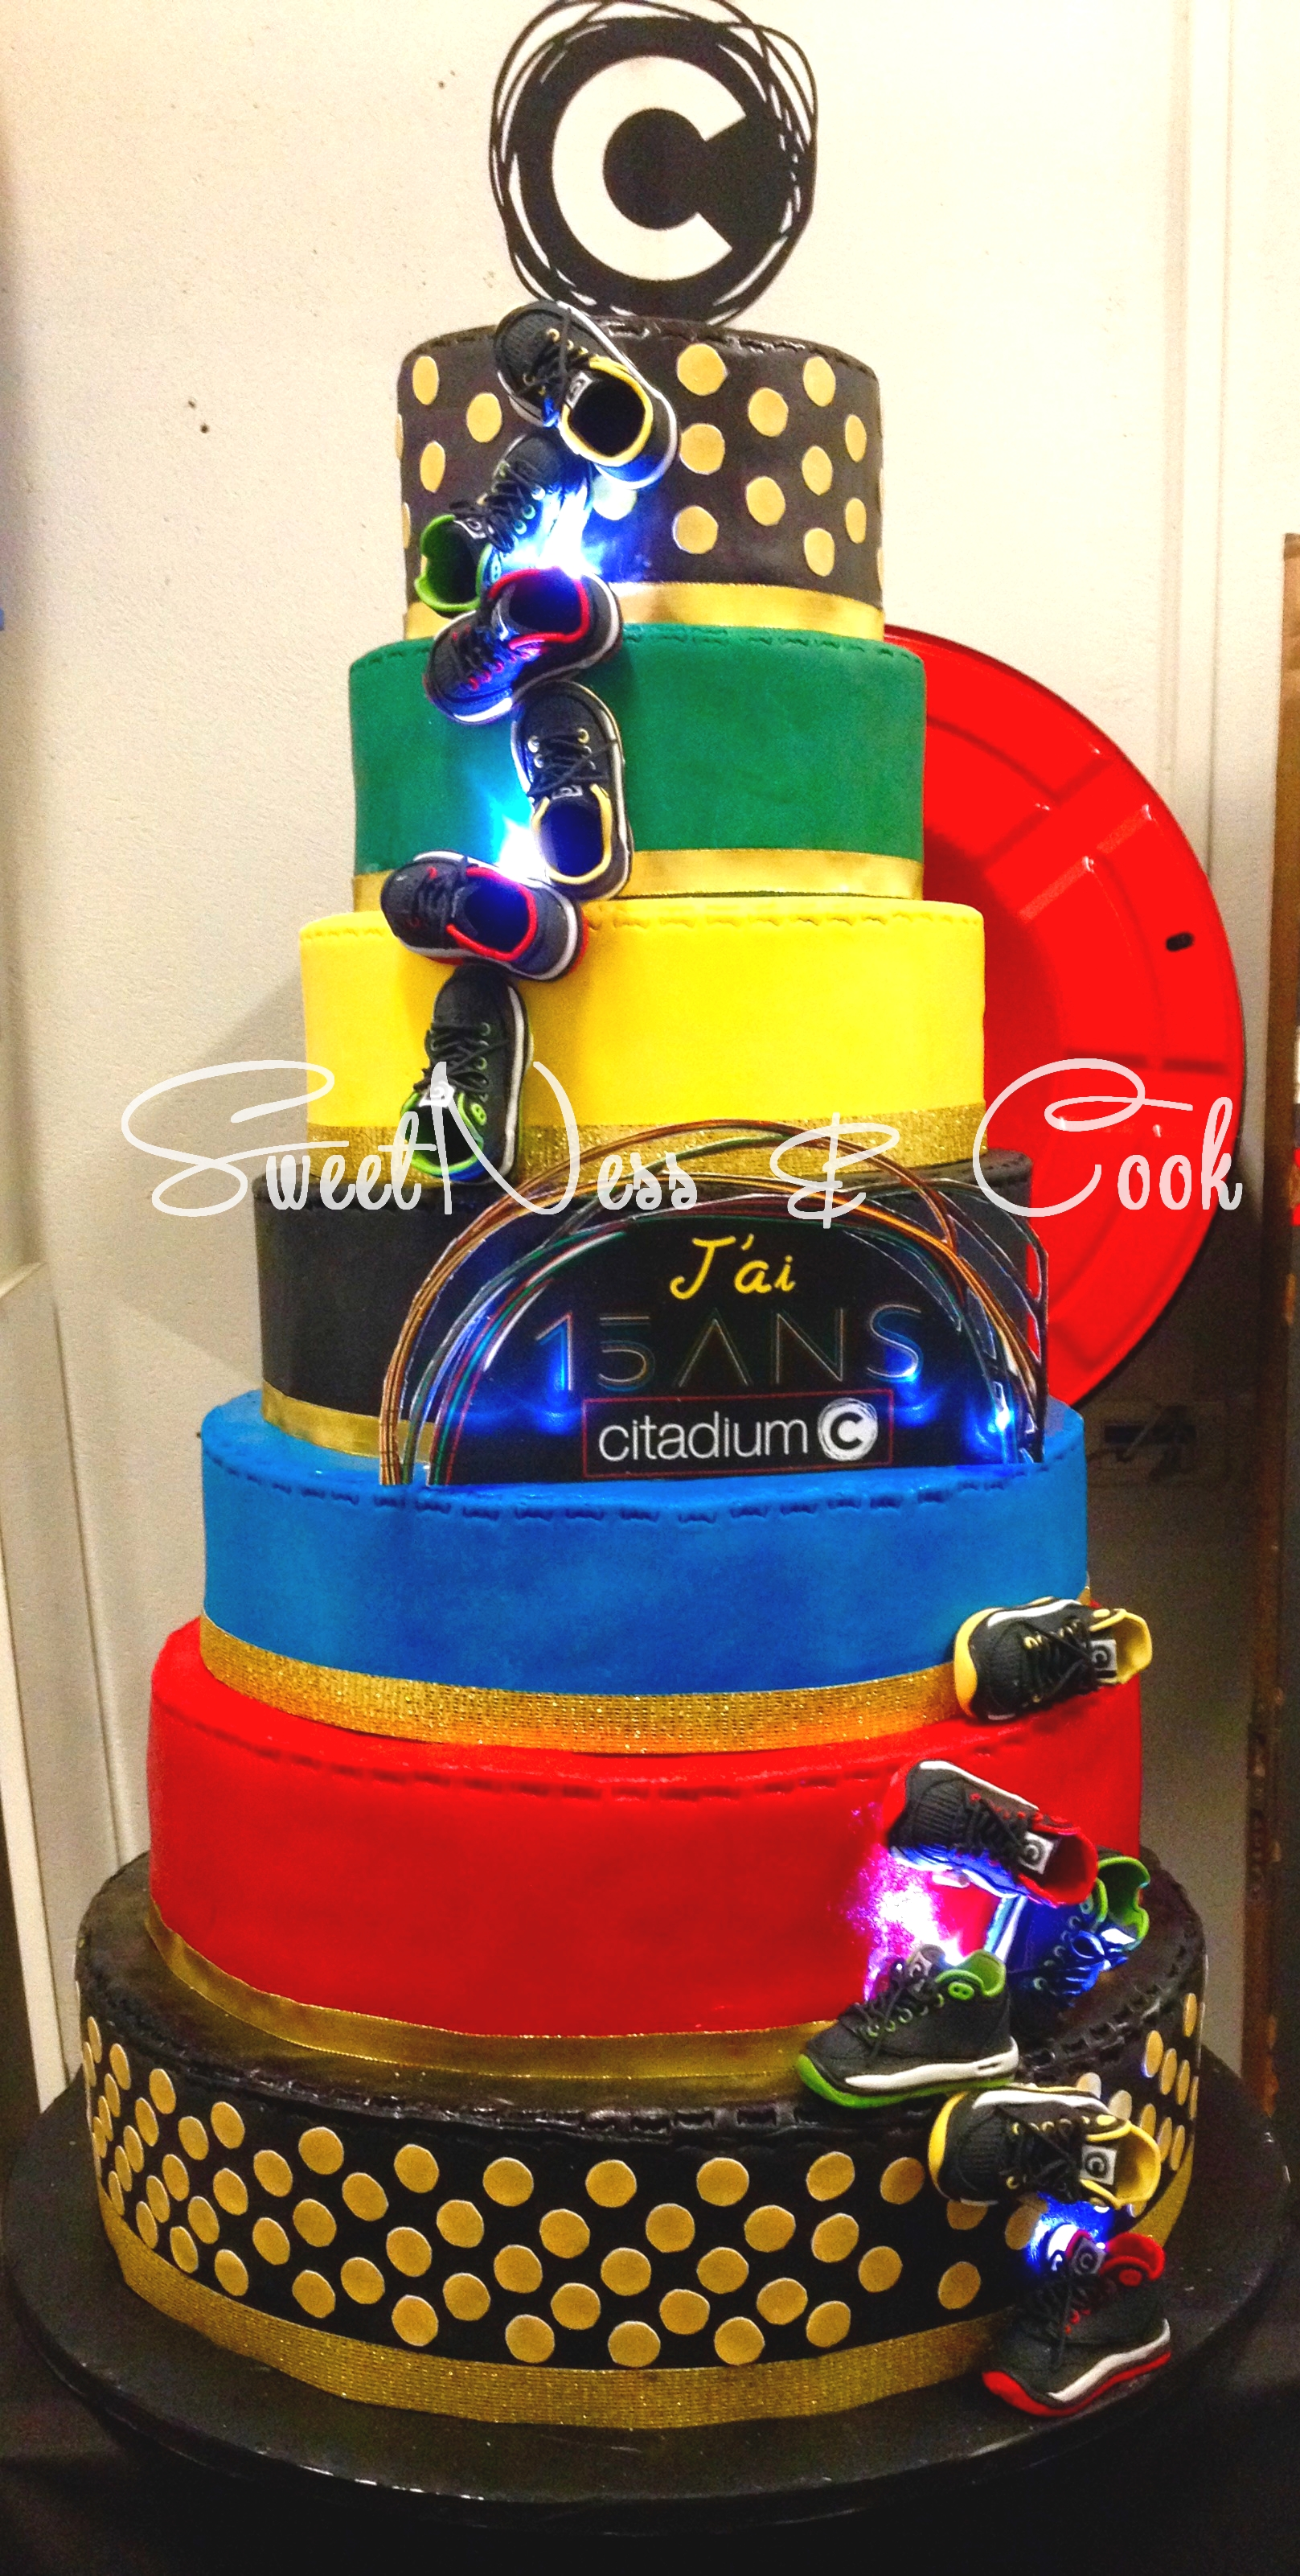 Wedding Cake Citadium